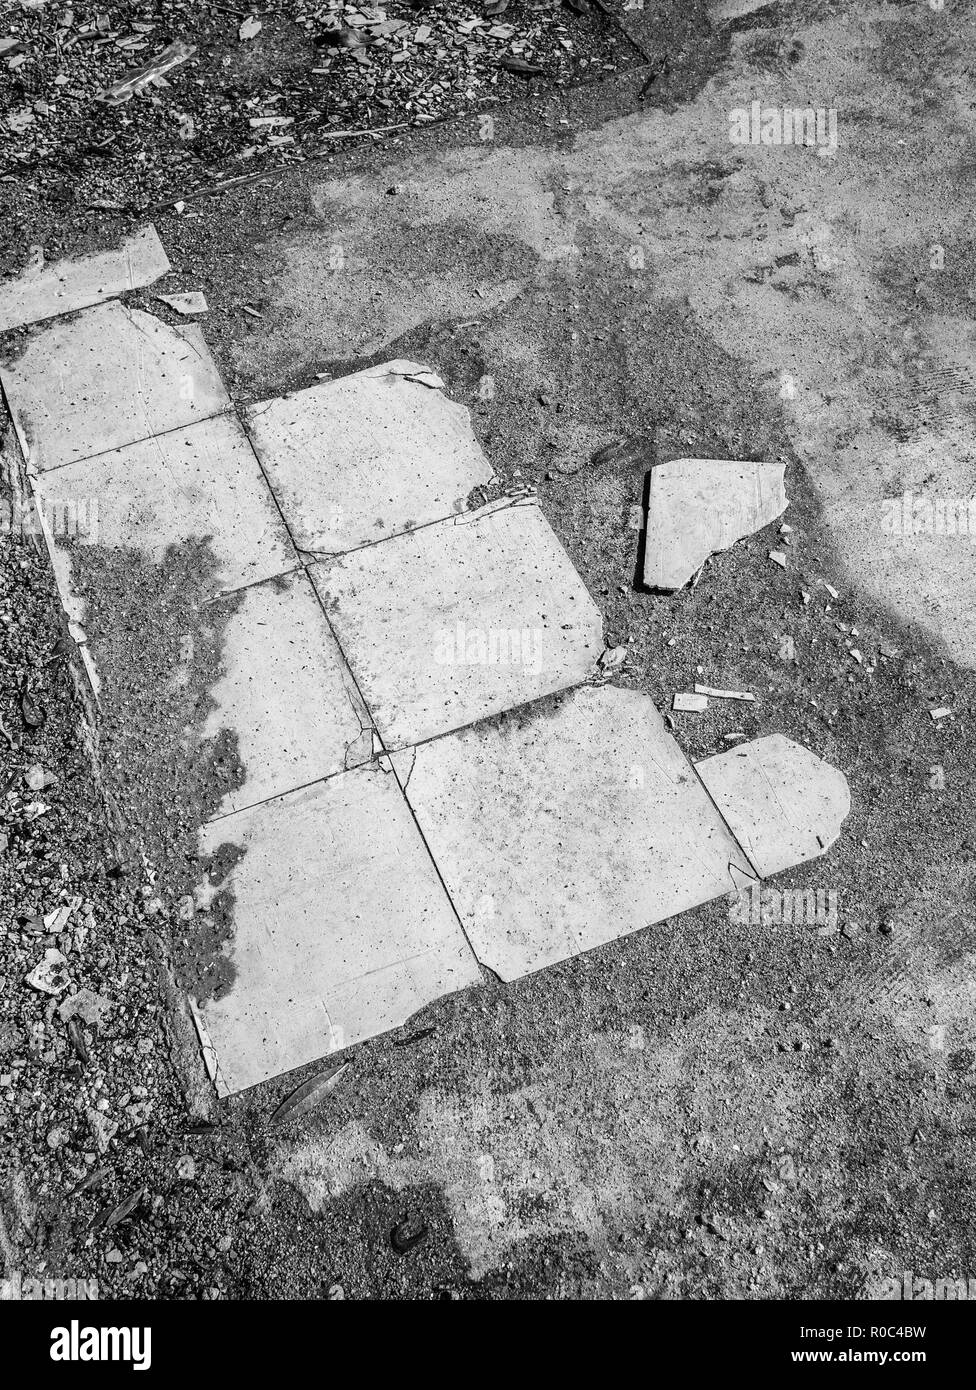 Old kitchen floor tiles in a demolished house. B&W version of R0C4C1. - Stock Image